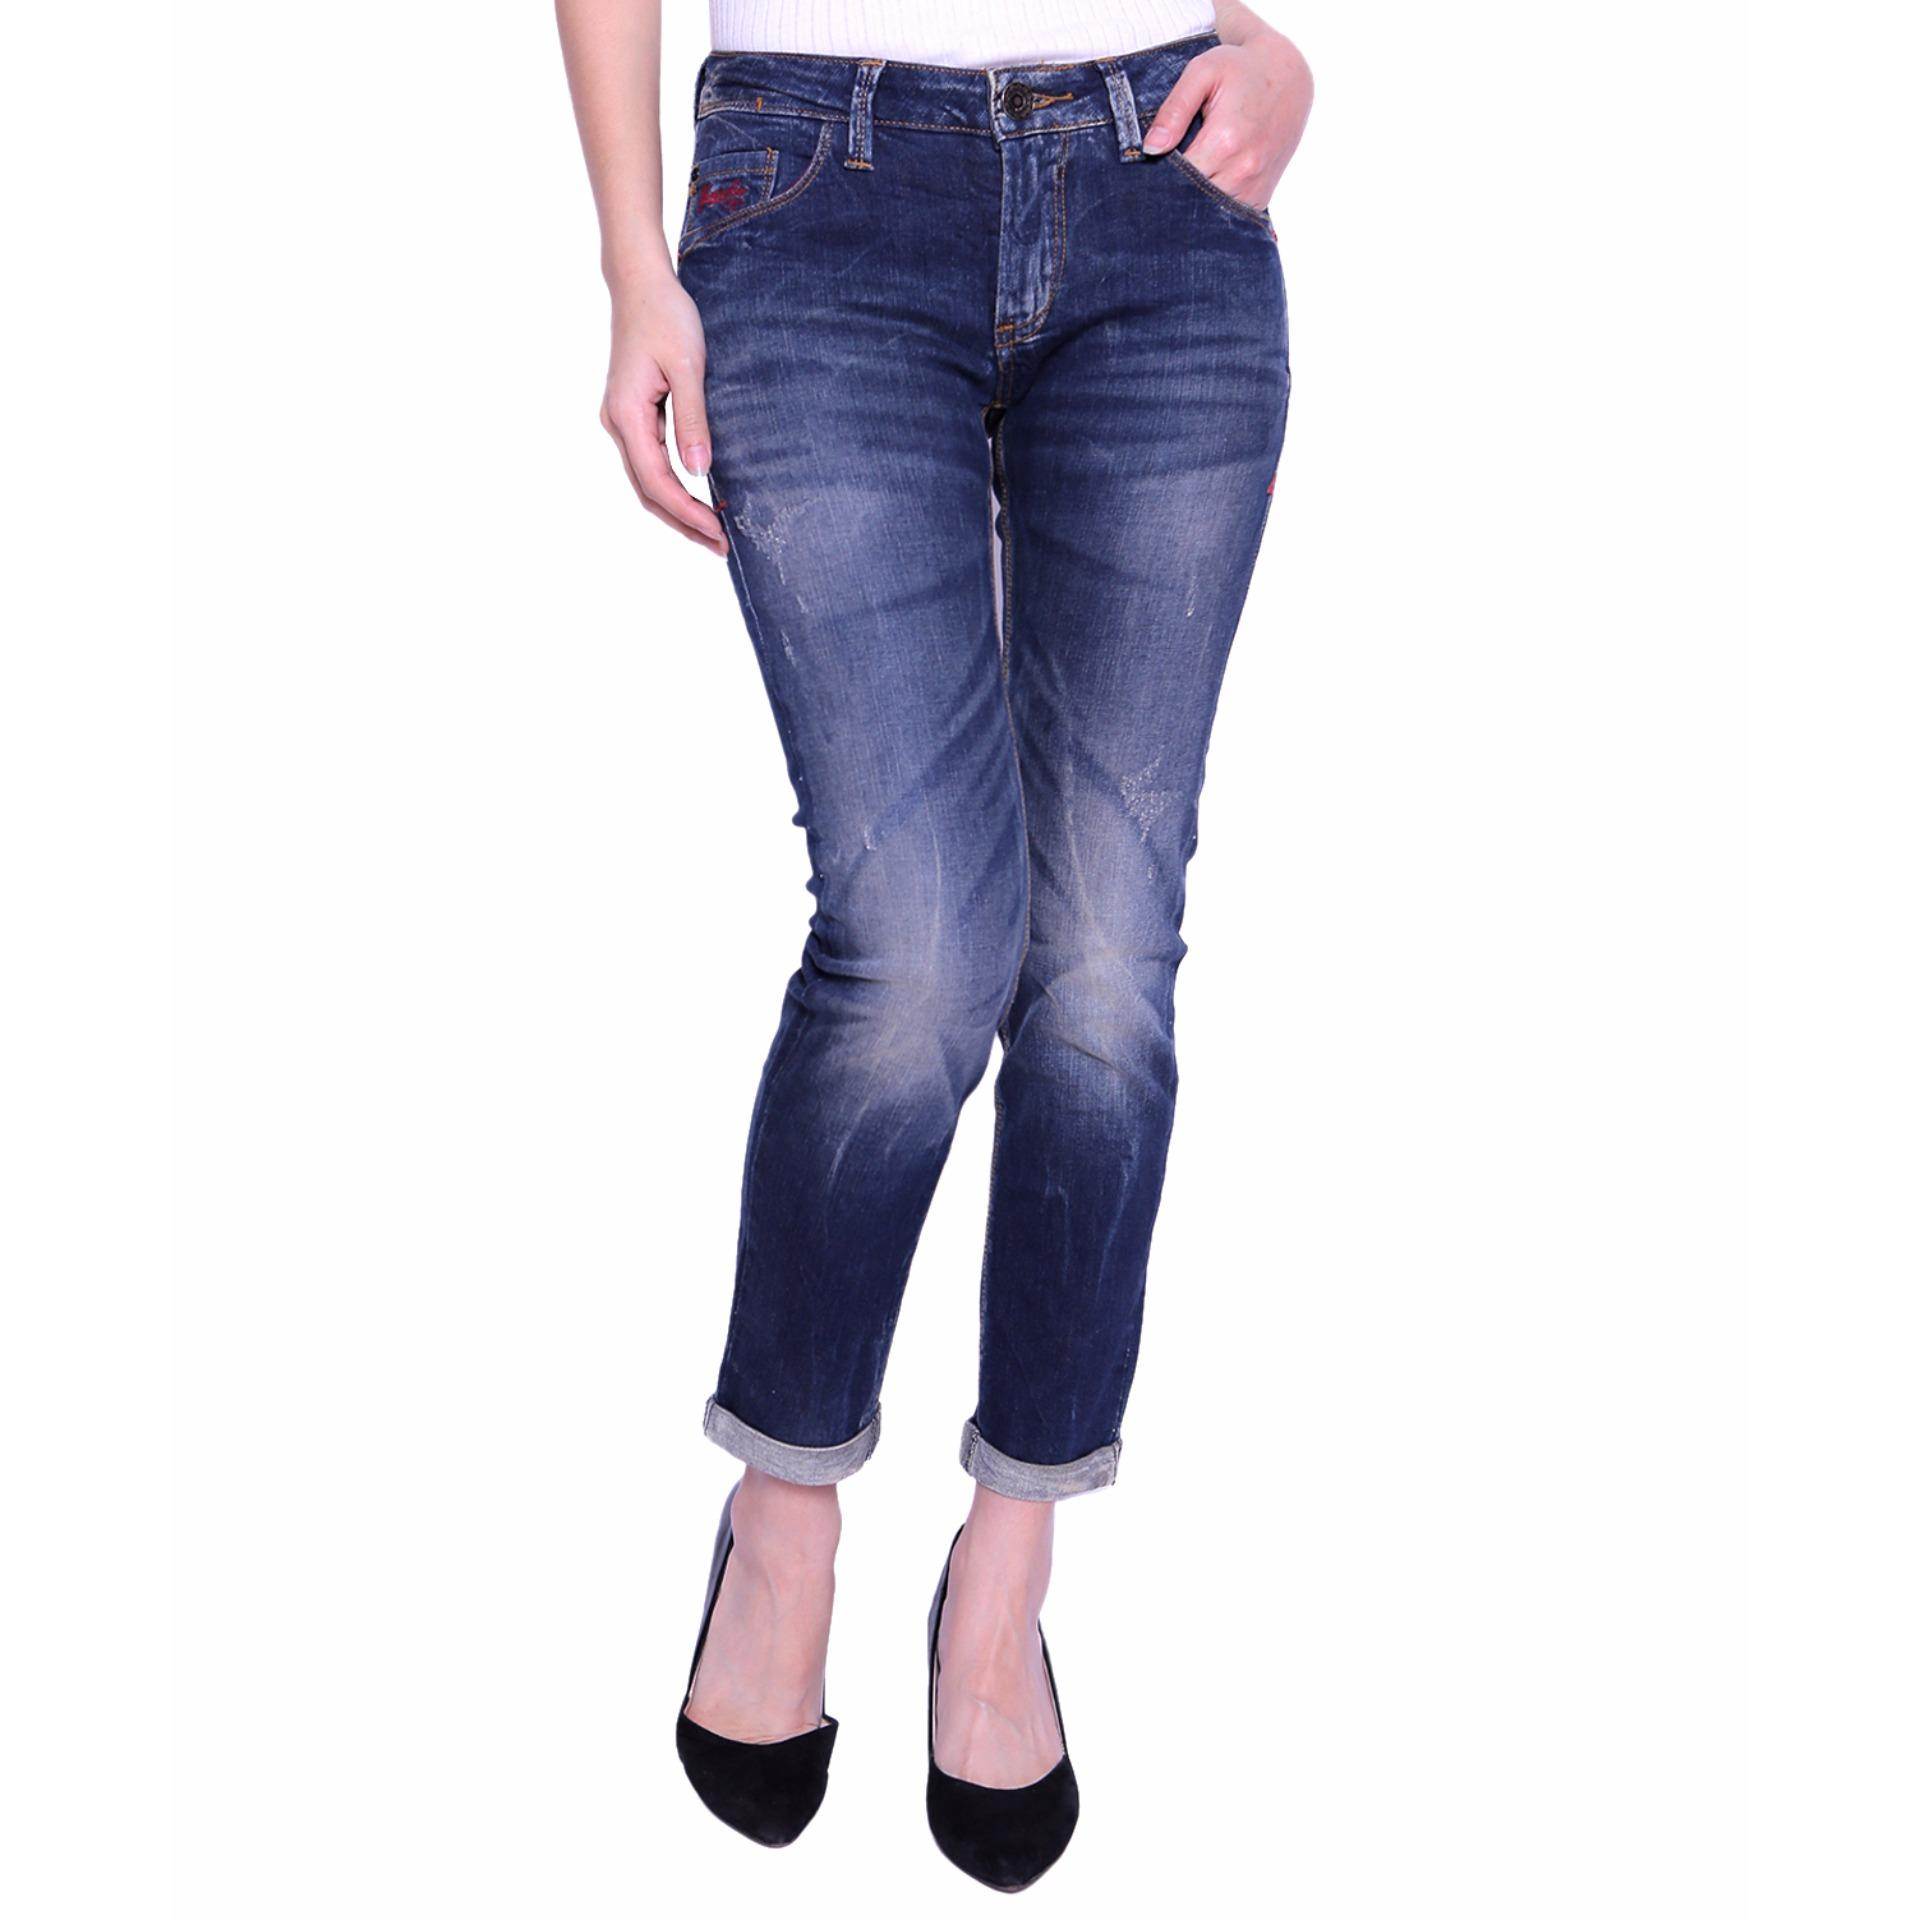 Review Toko Miyoshi Jeans My023Ablh16 Skinny Jeans 7 8 Online